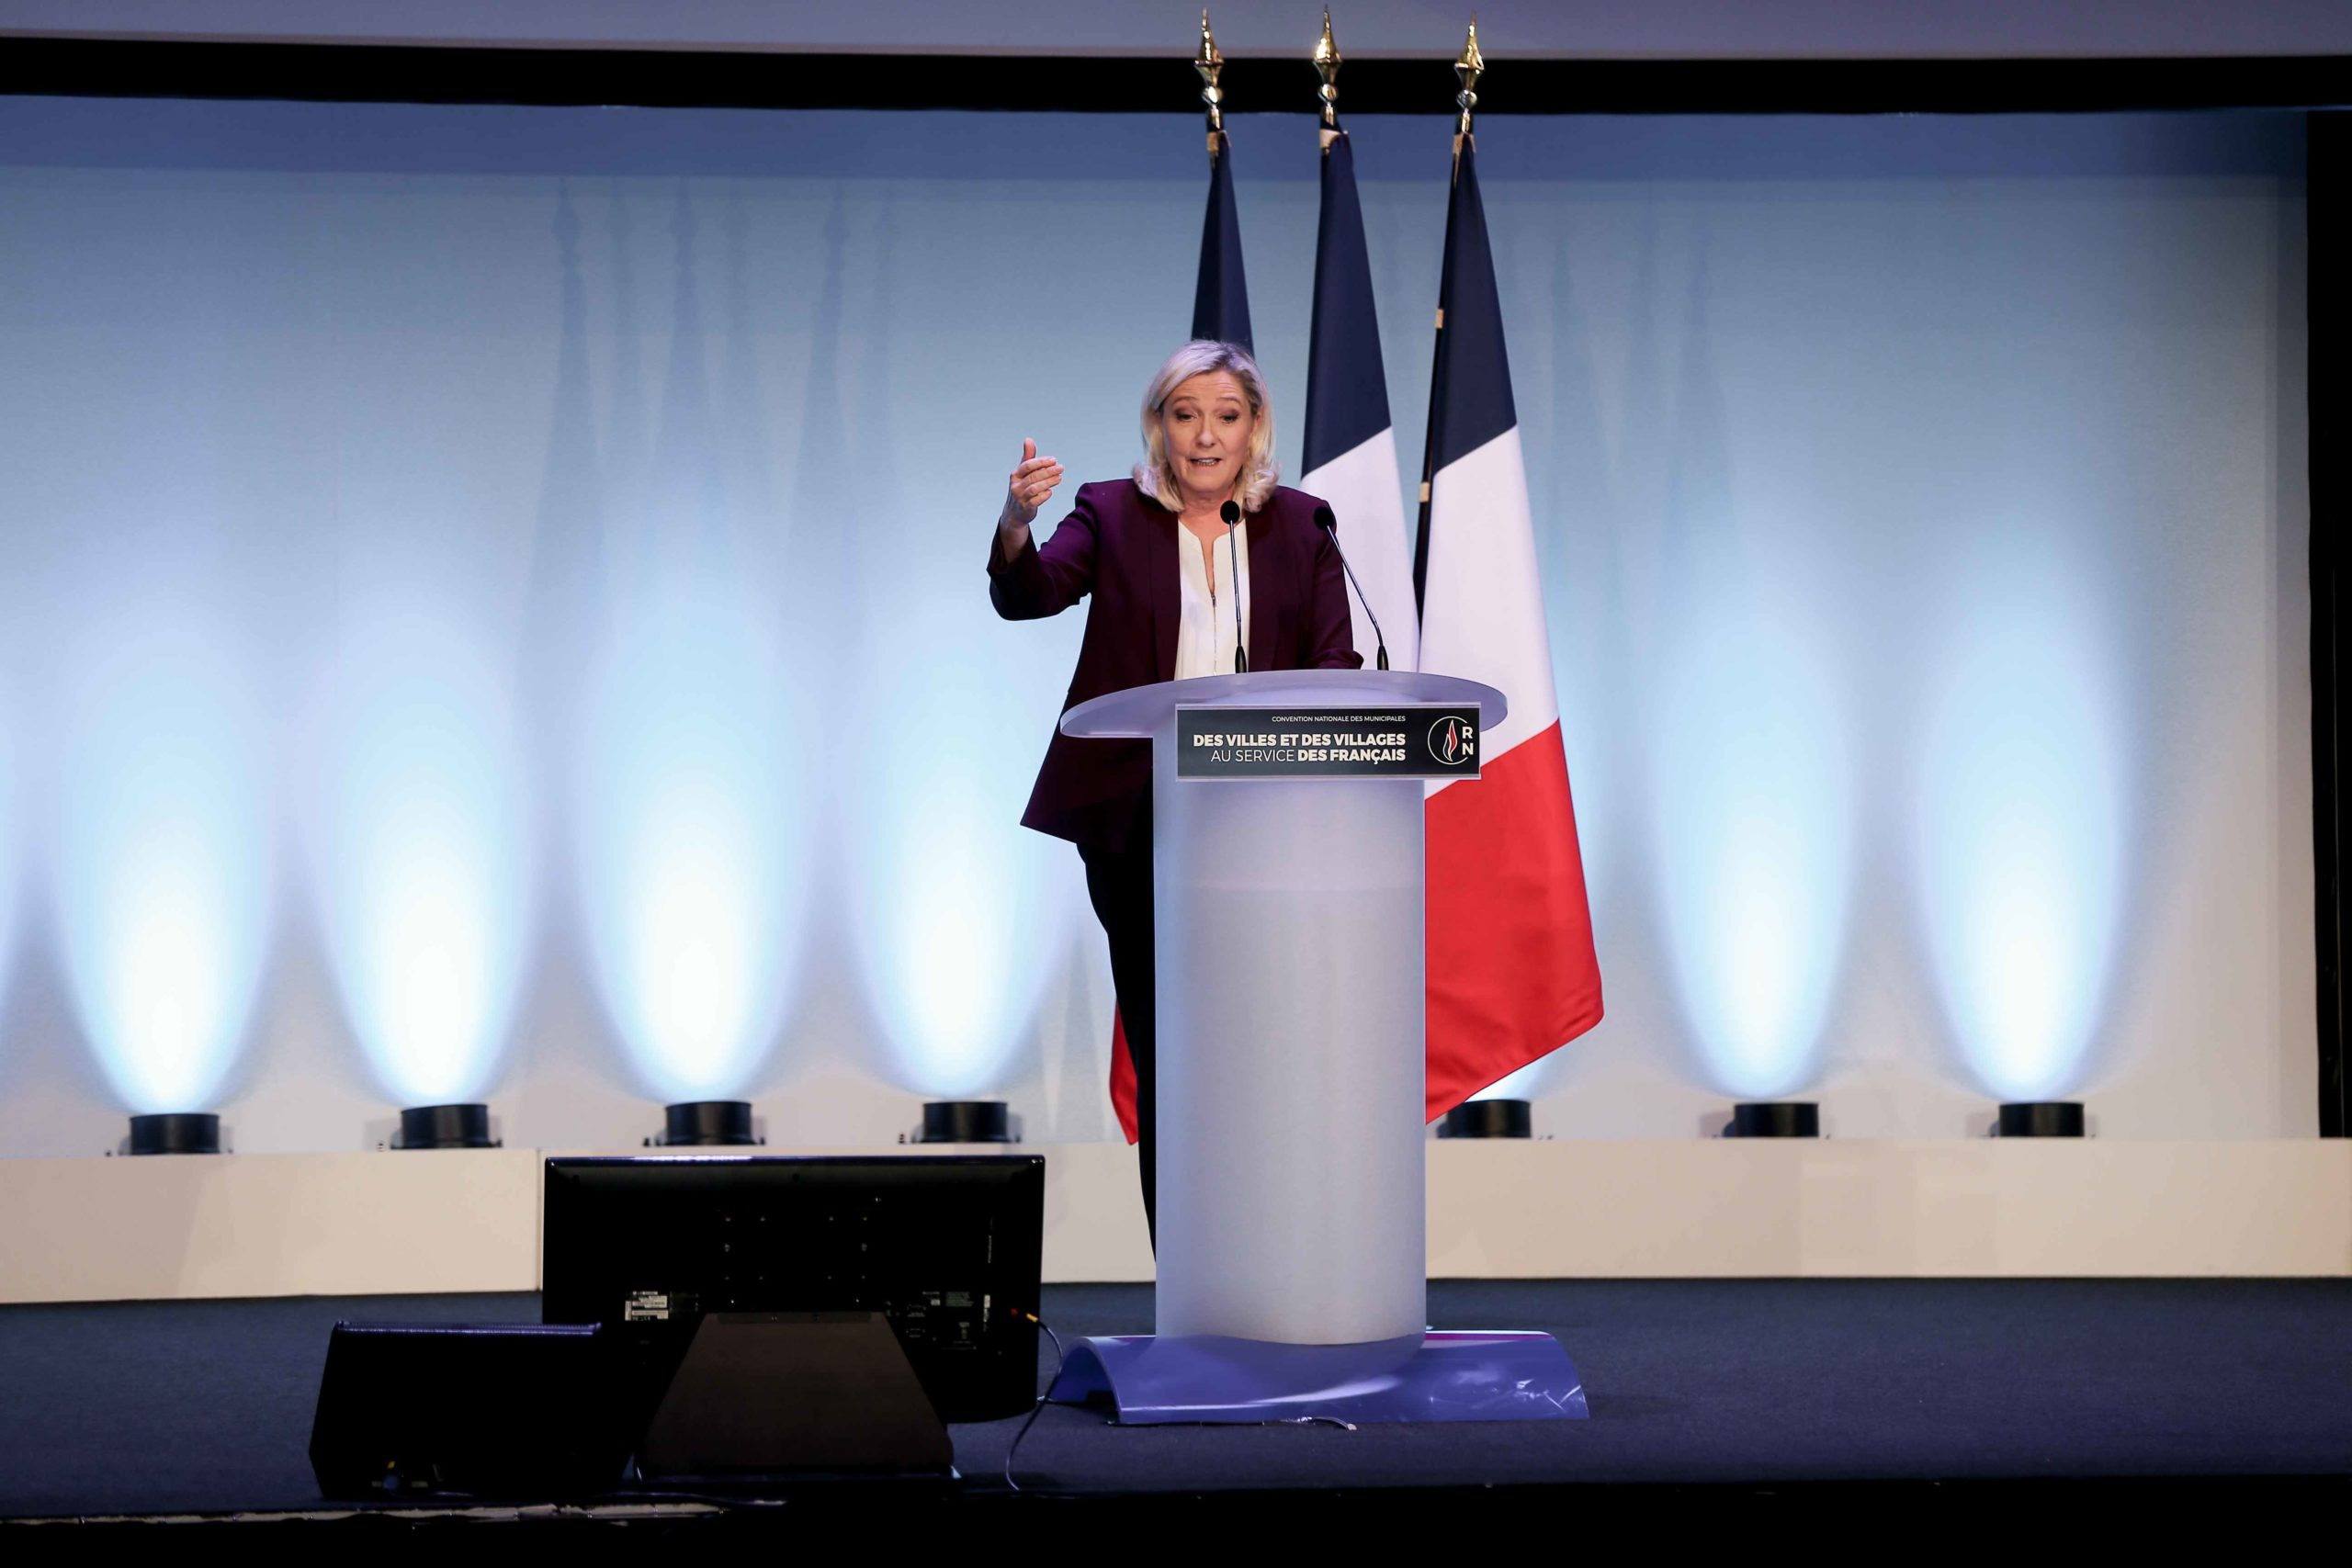 French far-right party Rassemblement National (RN) president and MP Marine Le Pen speaks in Paris, on January 12, 2020, during a meeting to launch the RN campaign candidates for the next municipal elections.  The 2020 French municipal elections will be hel